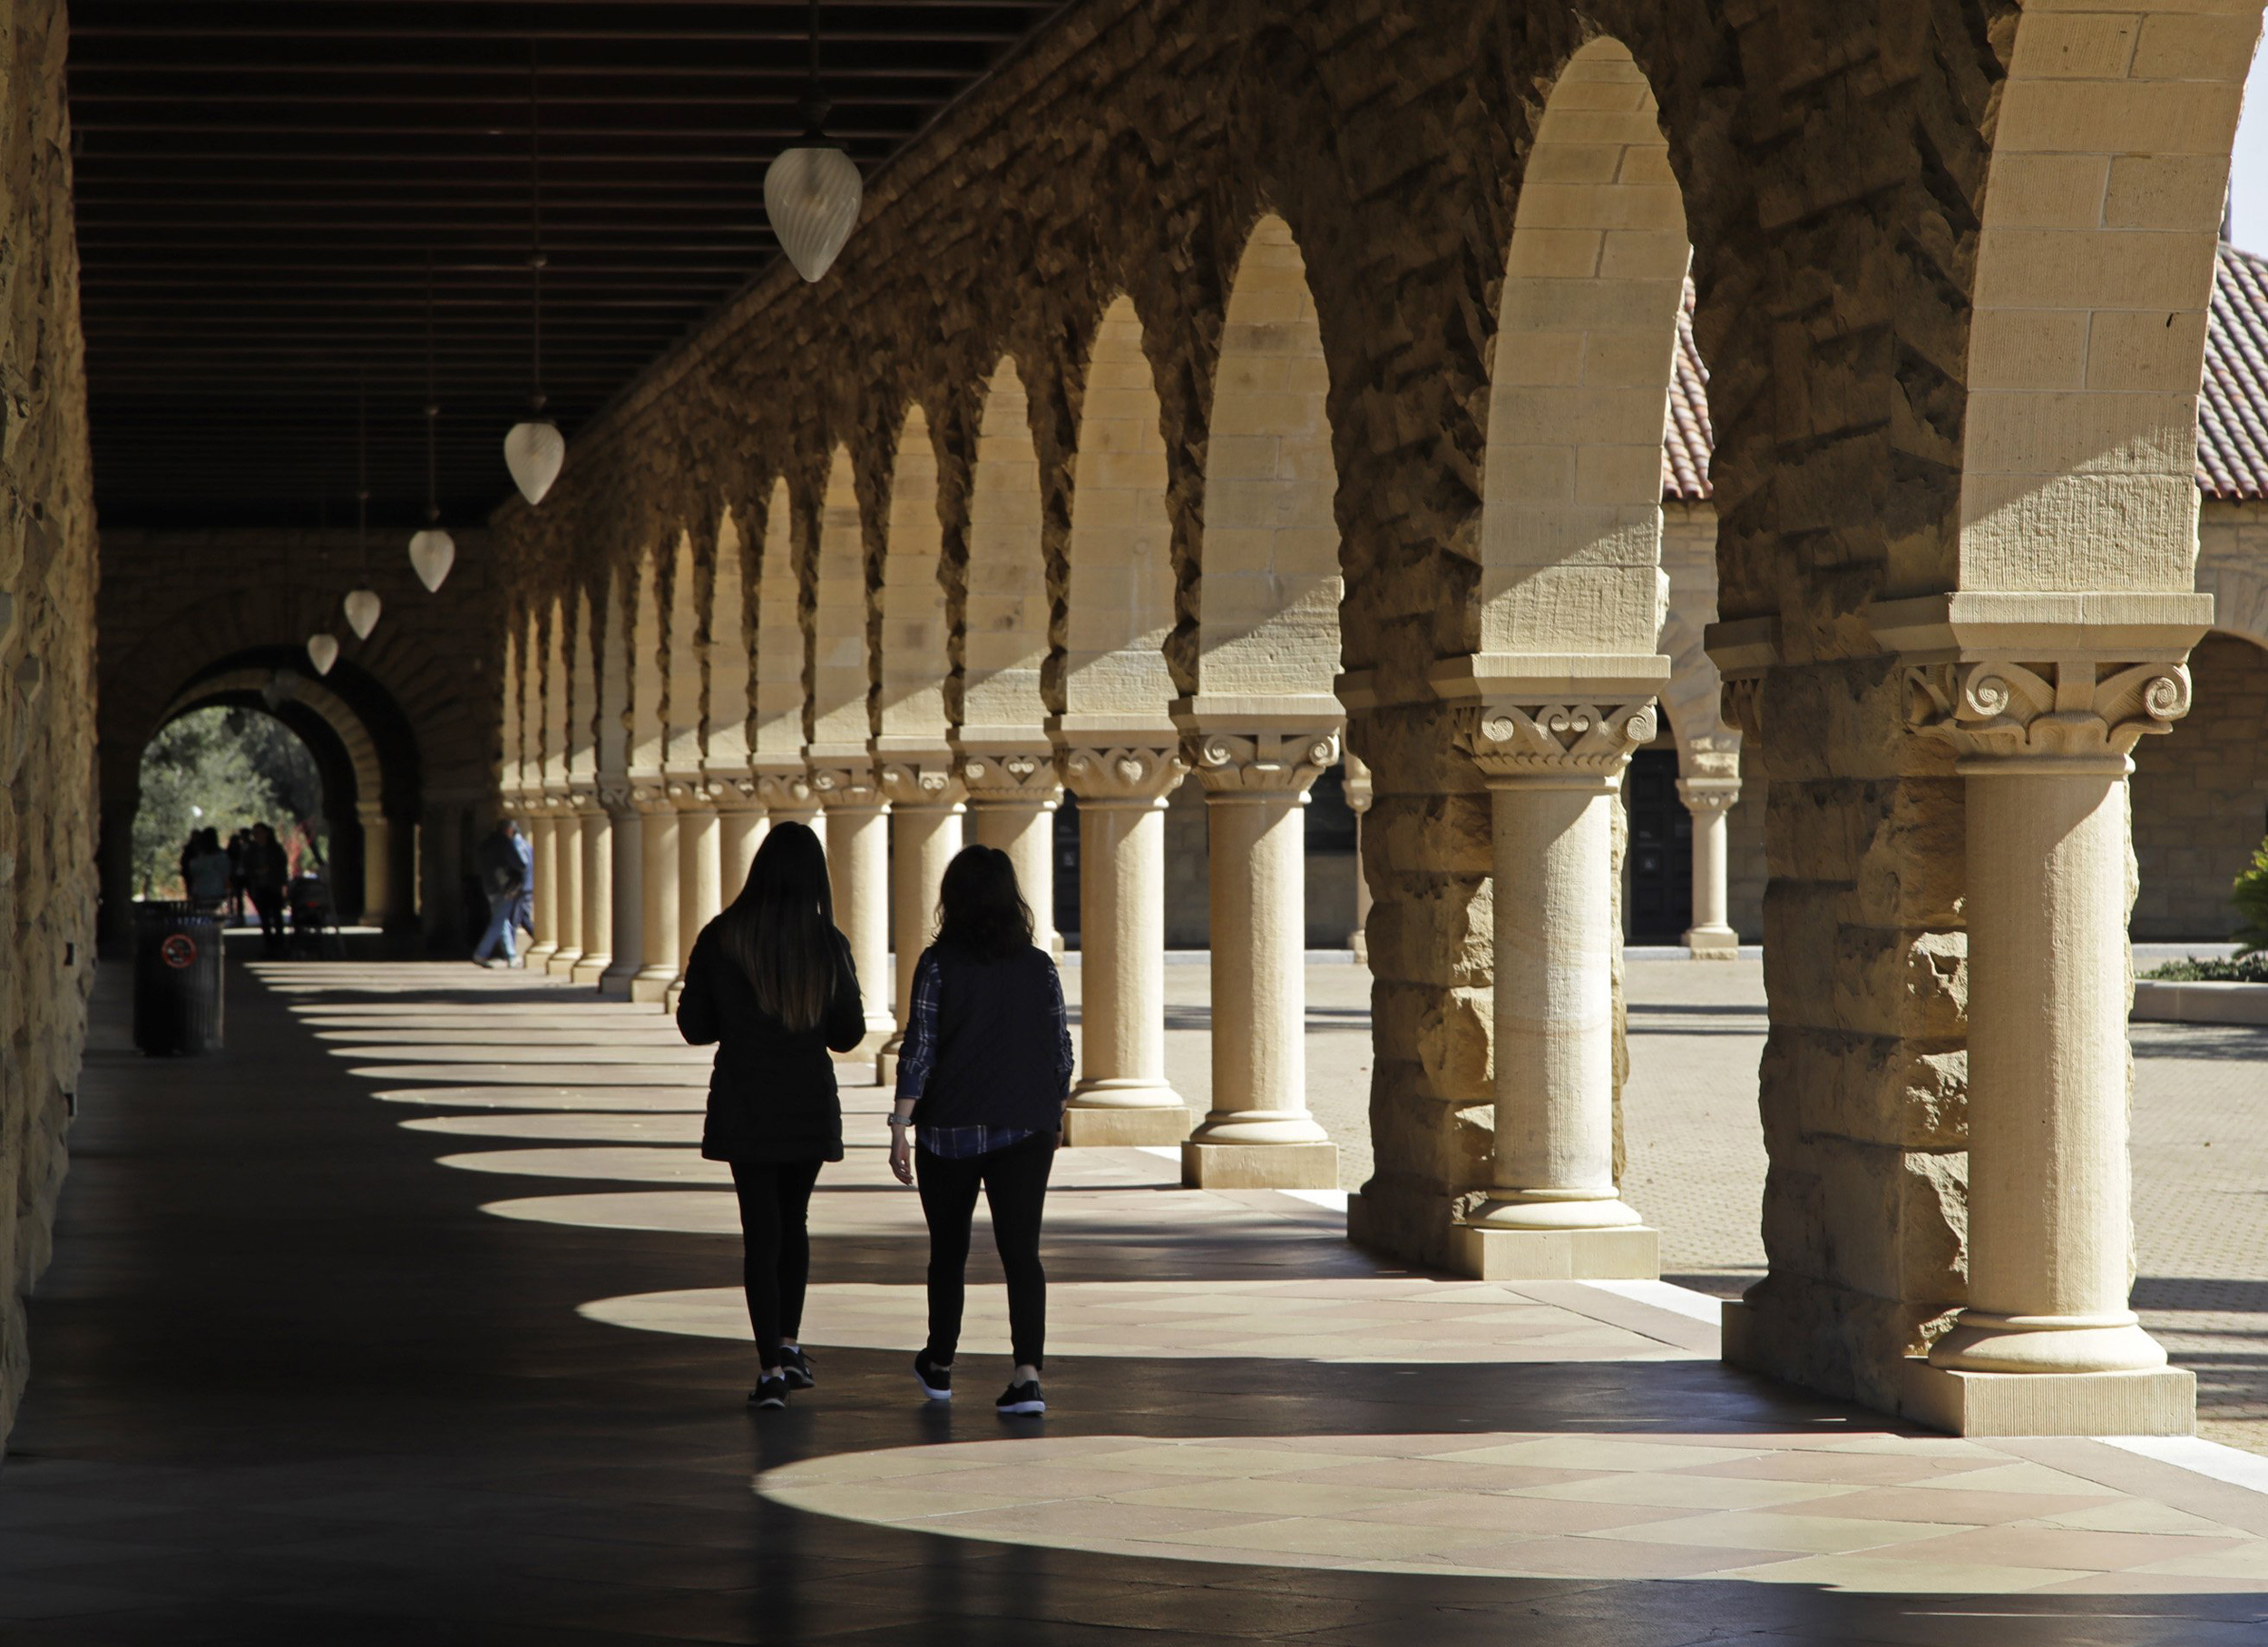 Stanford joins other elite universities in requiring weekly Covid testing for all students